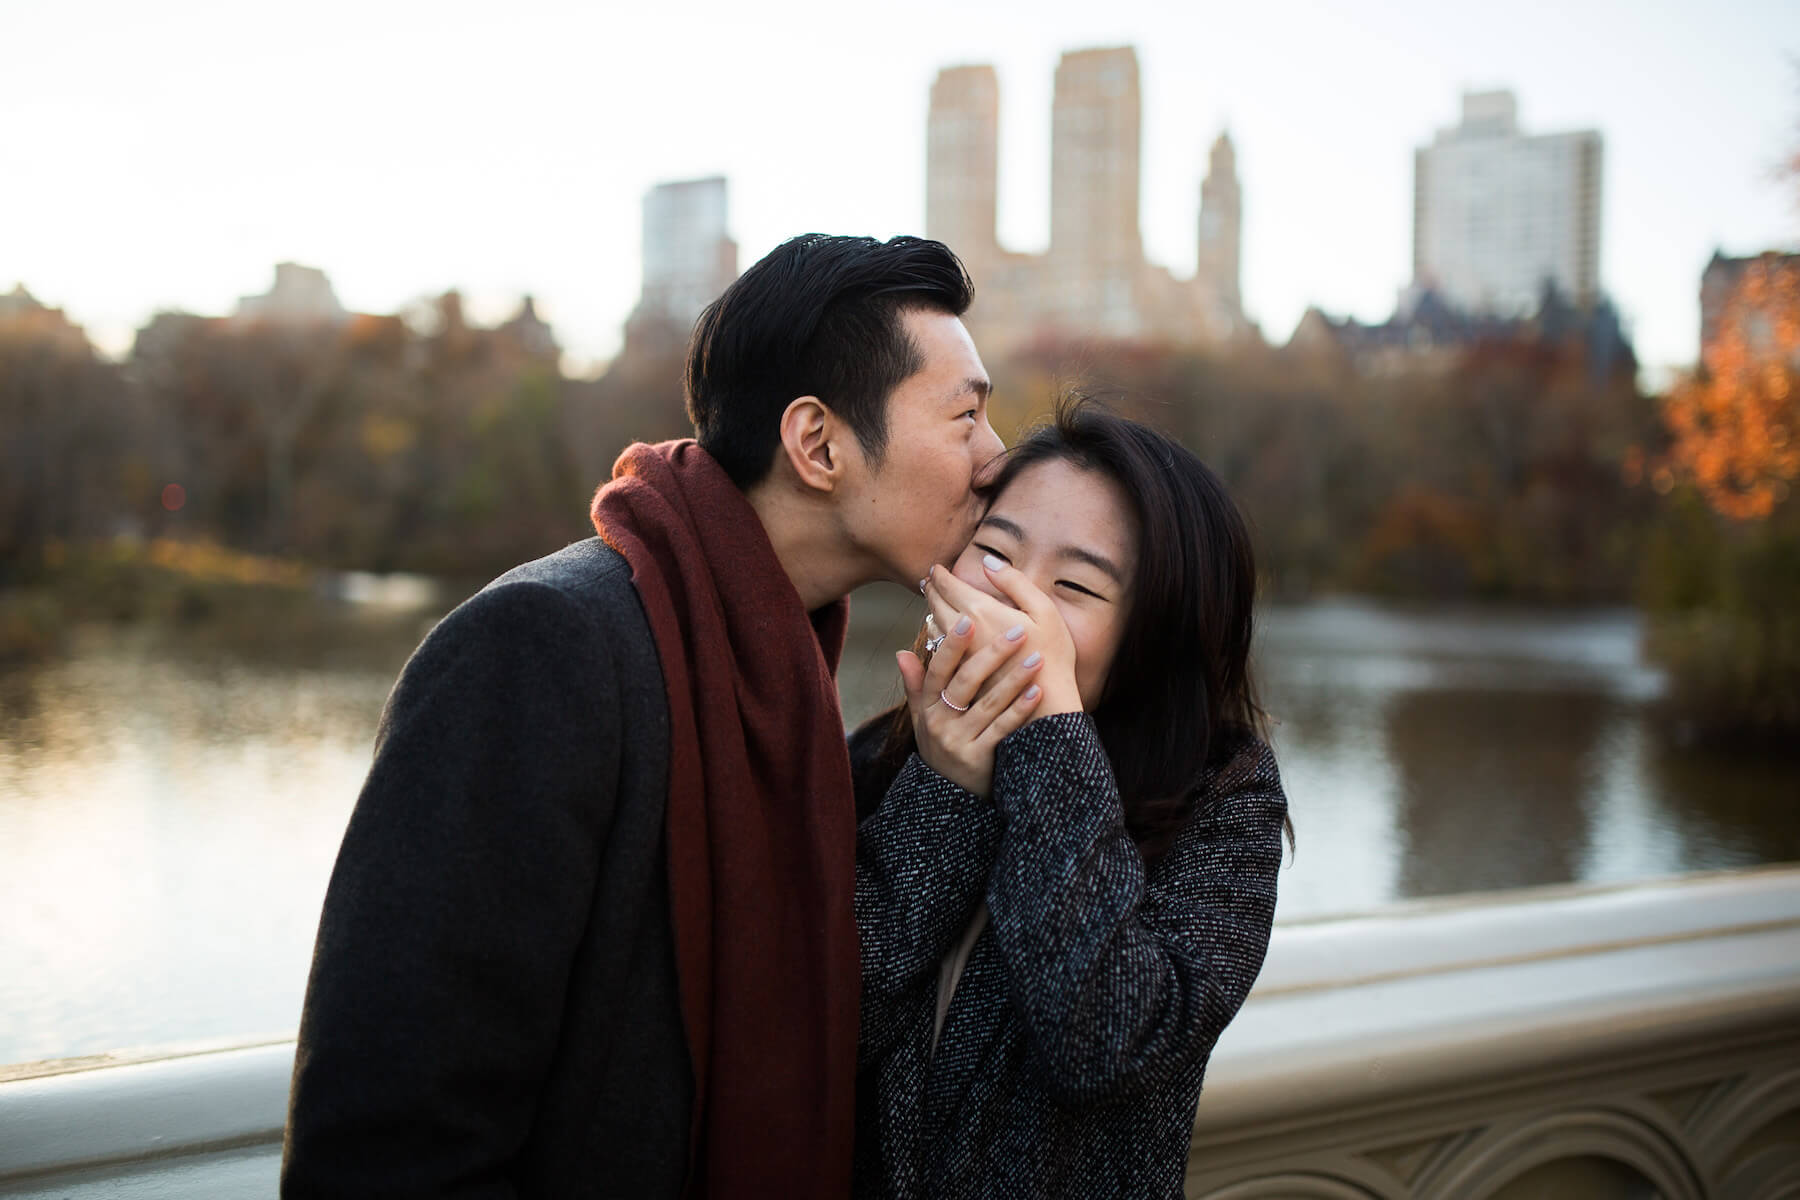 Man kissing his partner's forehead while she is covering her mouth smiling in Central Park, New York City, USA